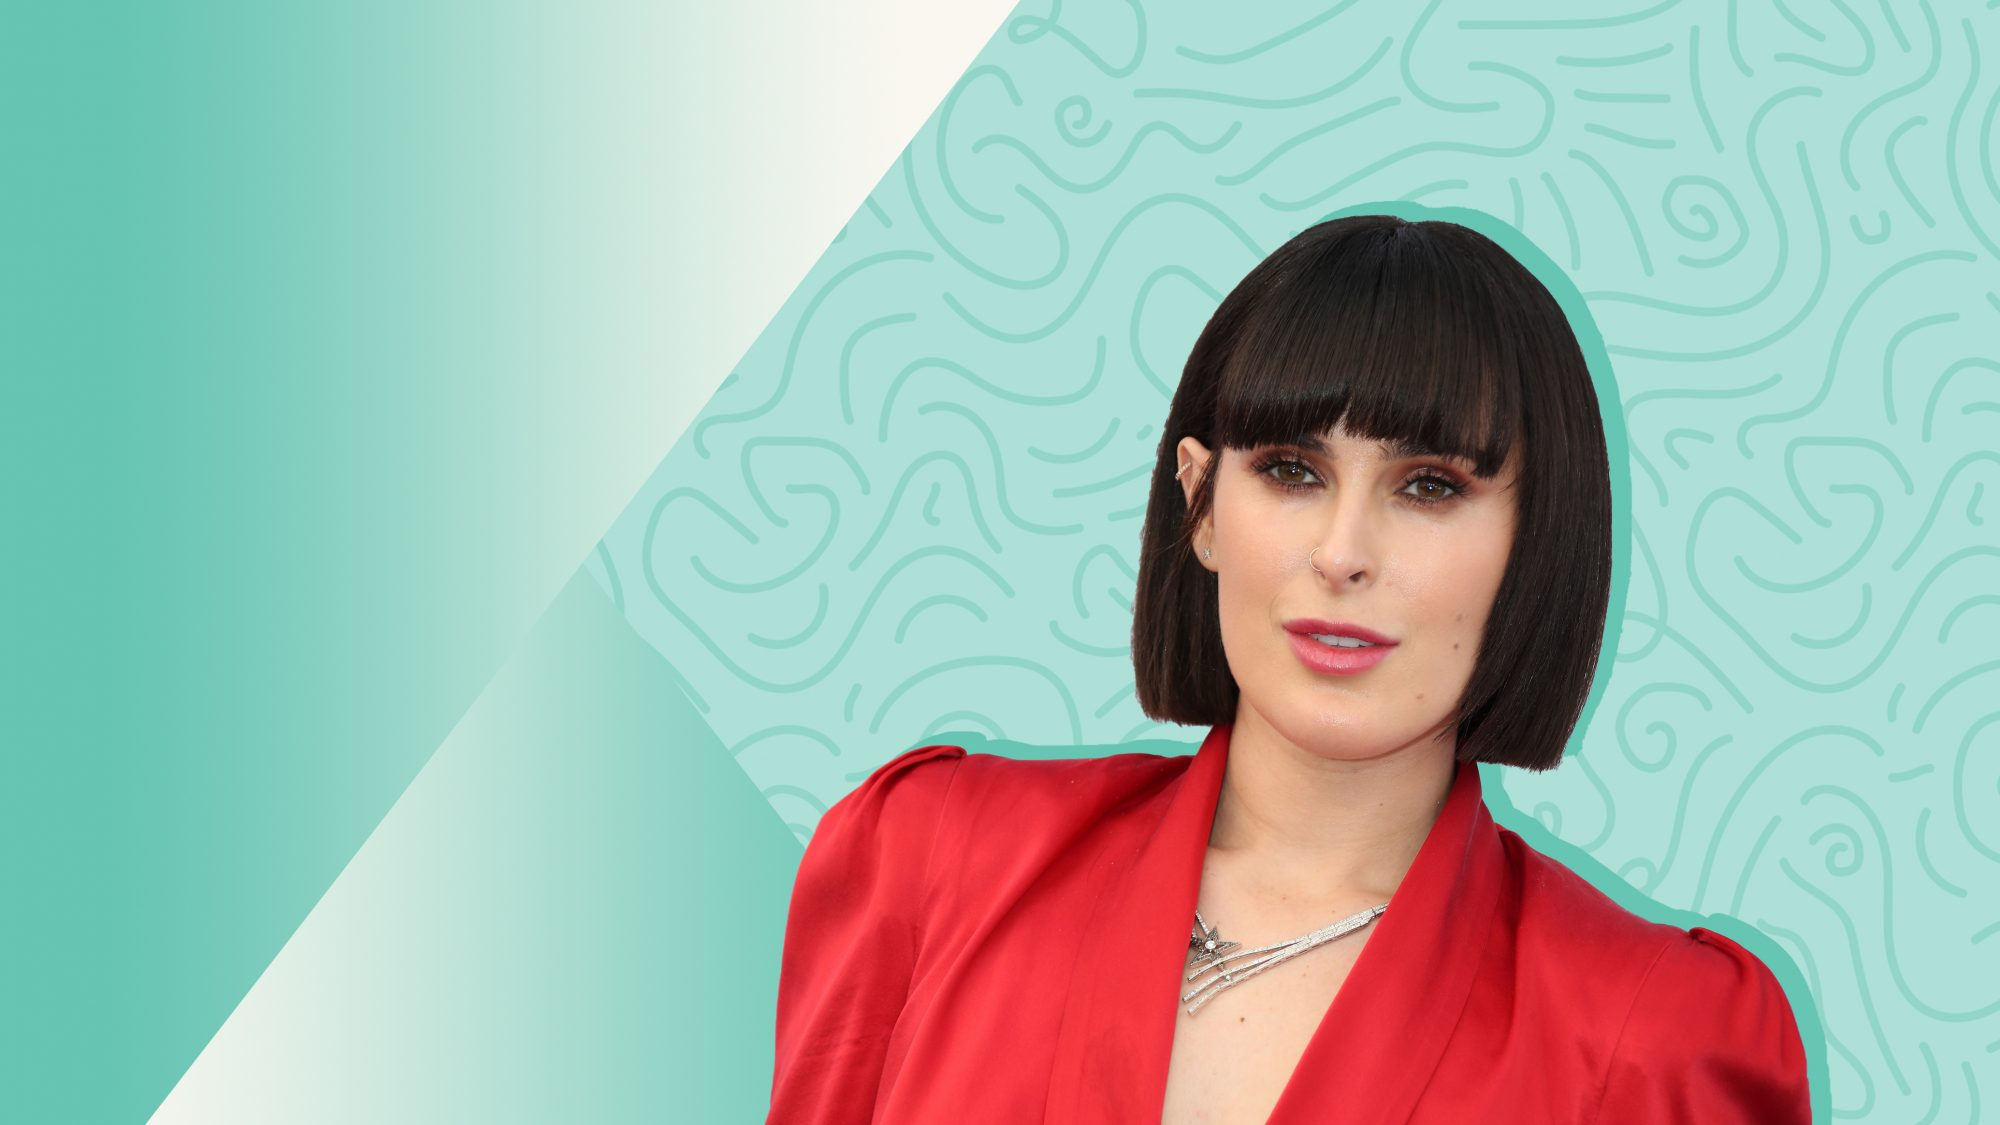 Rumer Willis Reveals She's Been Sick for Almost an 'Entire Month' from an 'Unknown Stomach Problem'